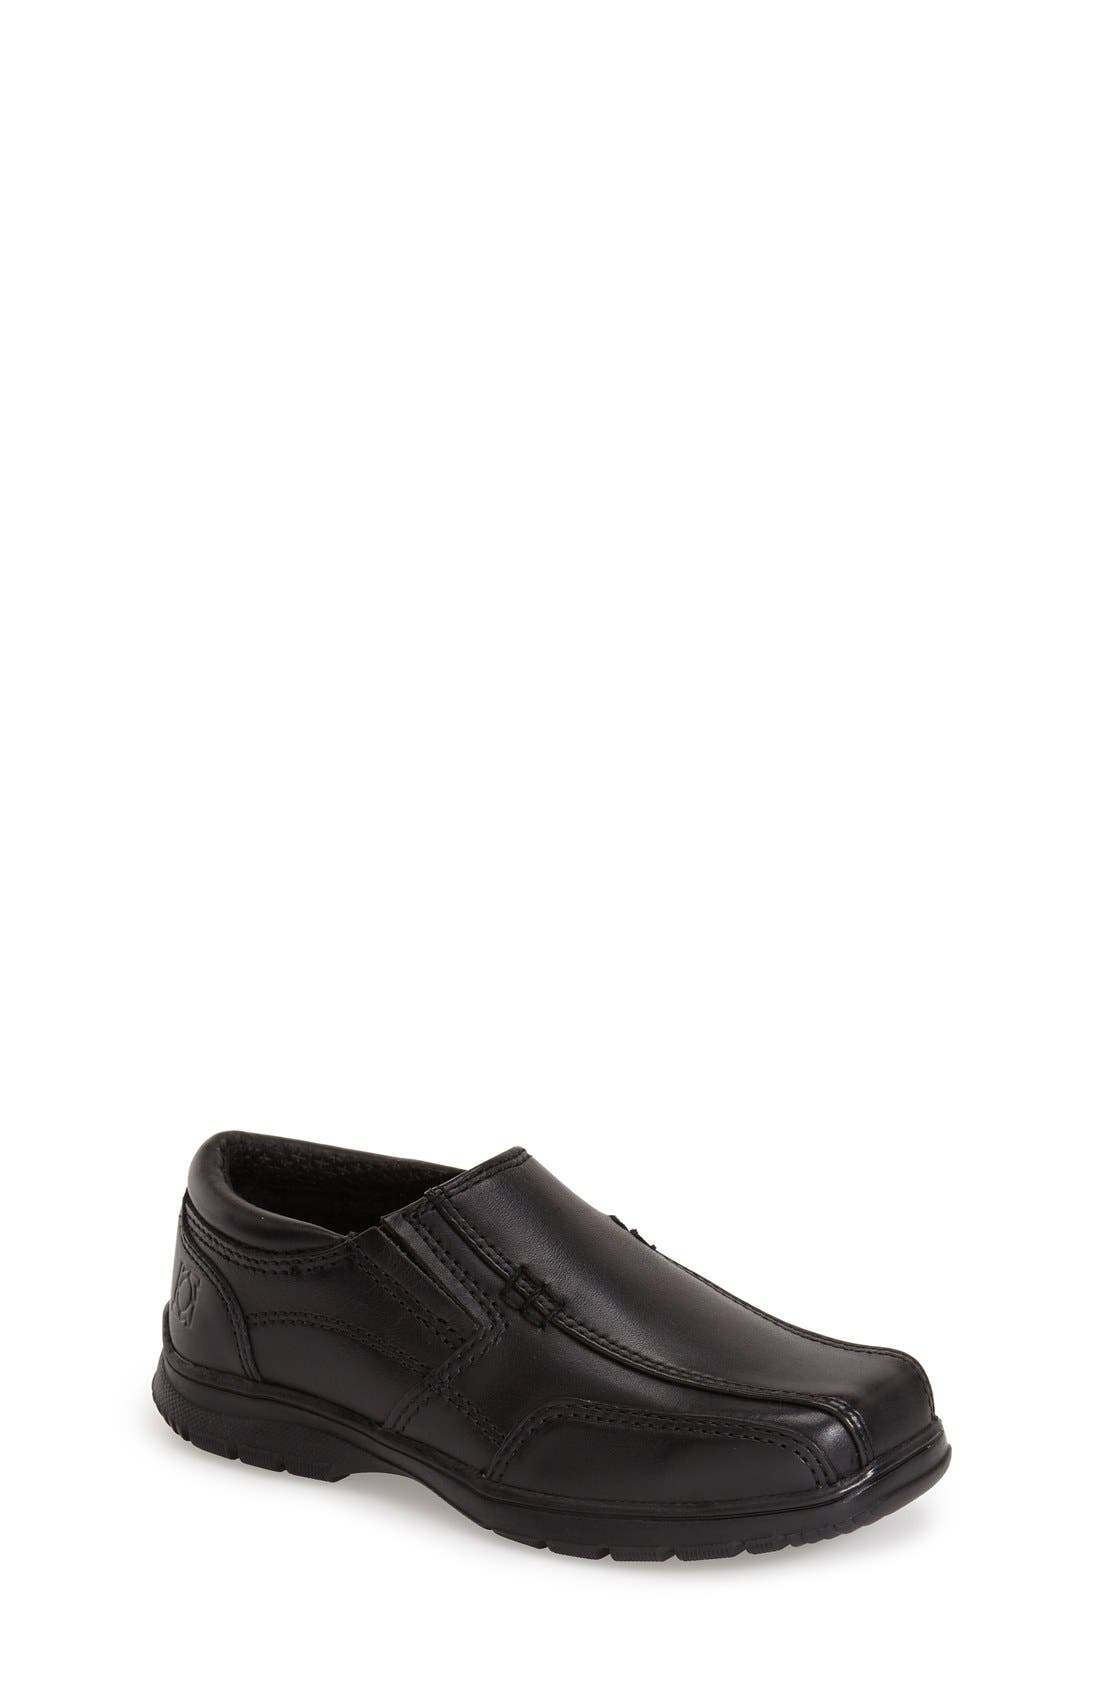 KENNETH COLE NEW YORK Reaction Kenneth ColeCheck N Check Loafer